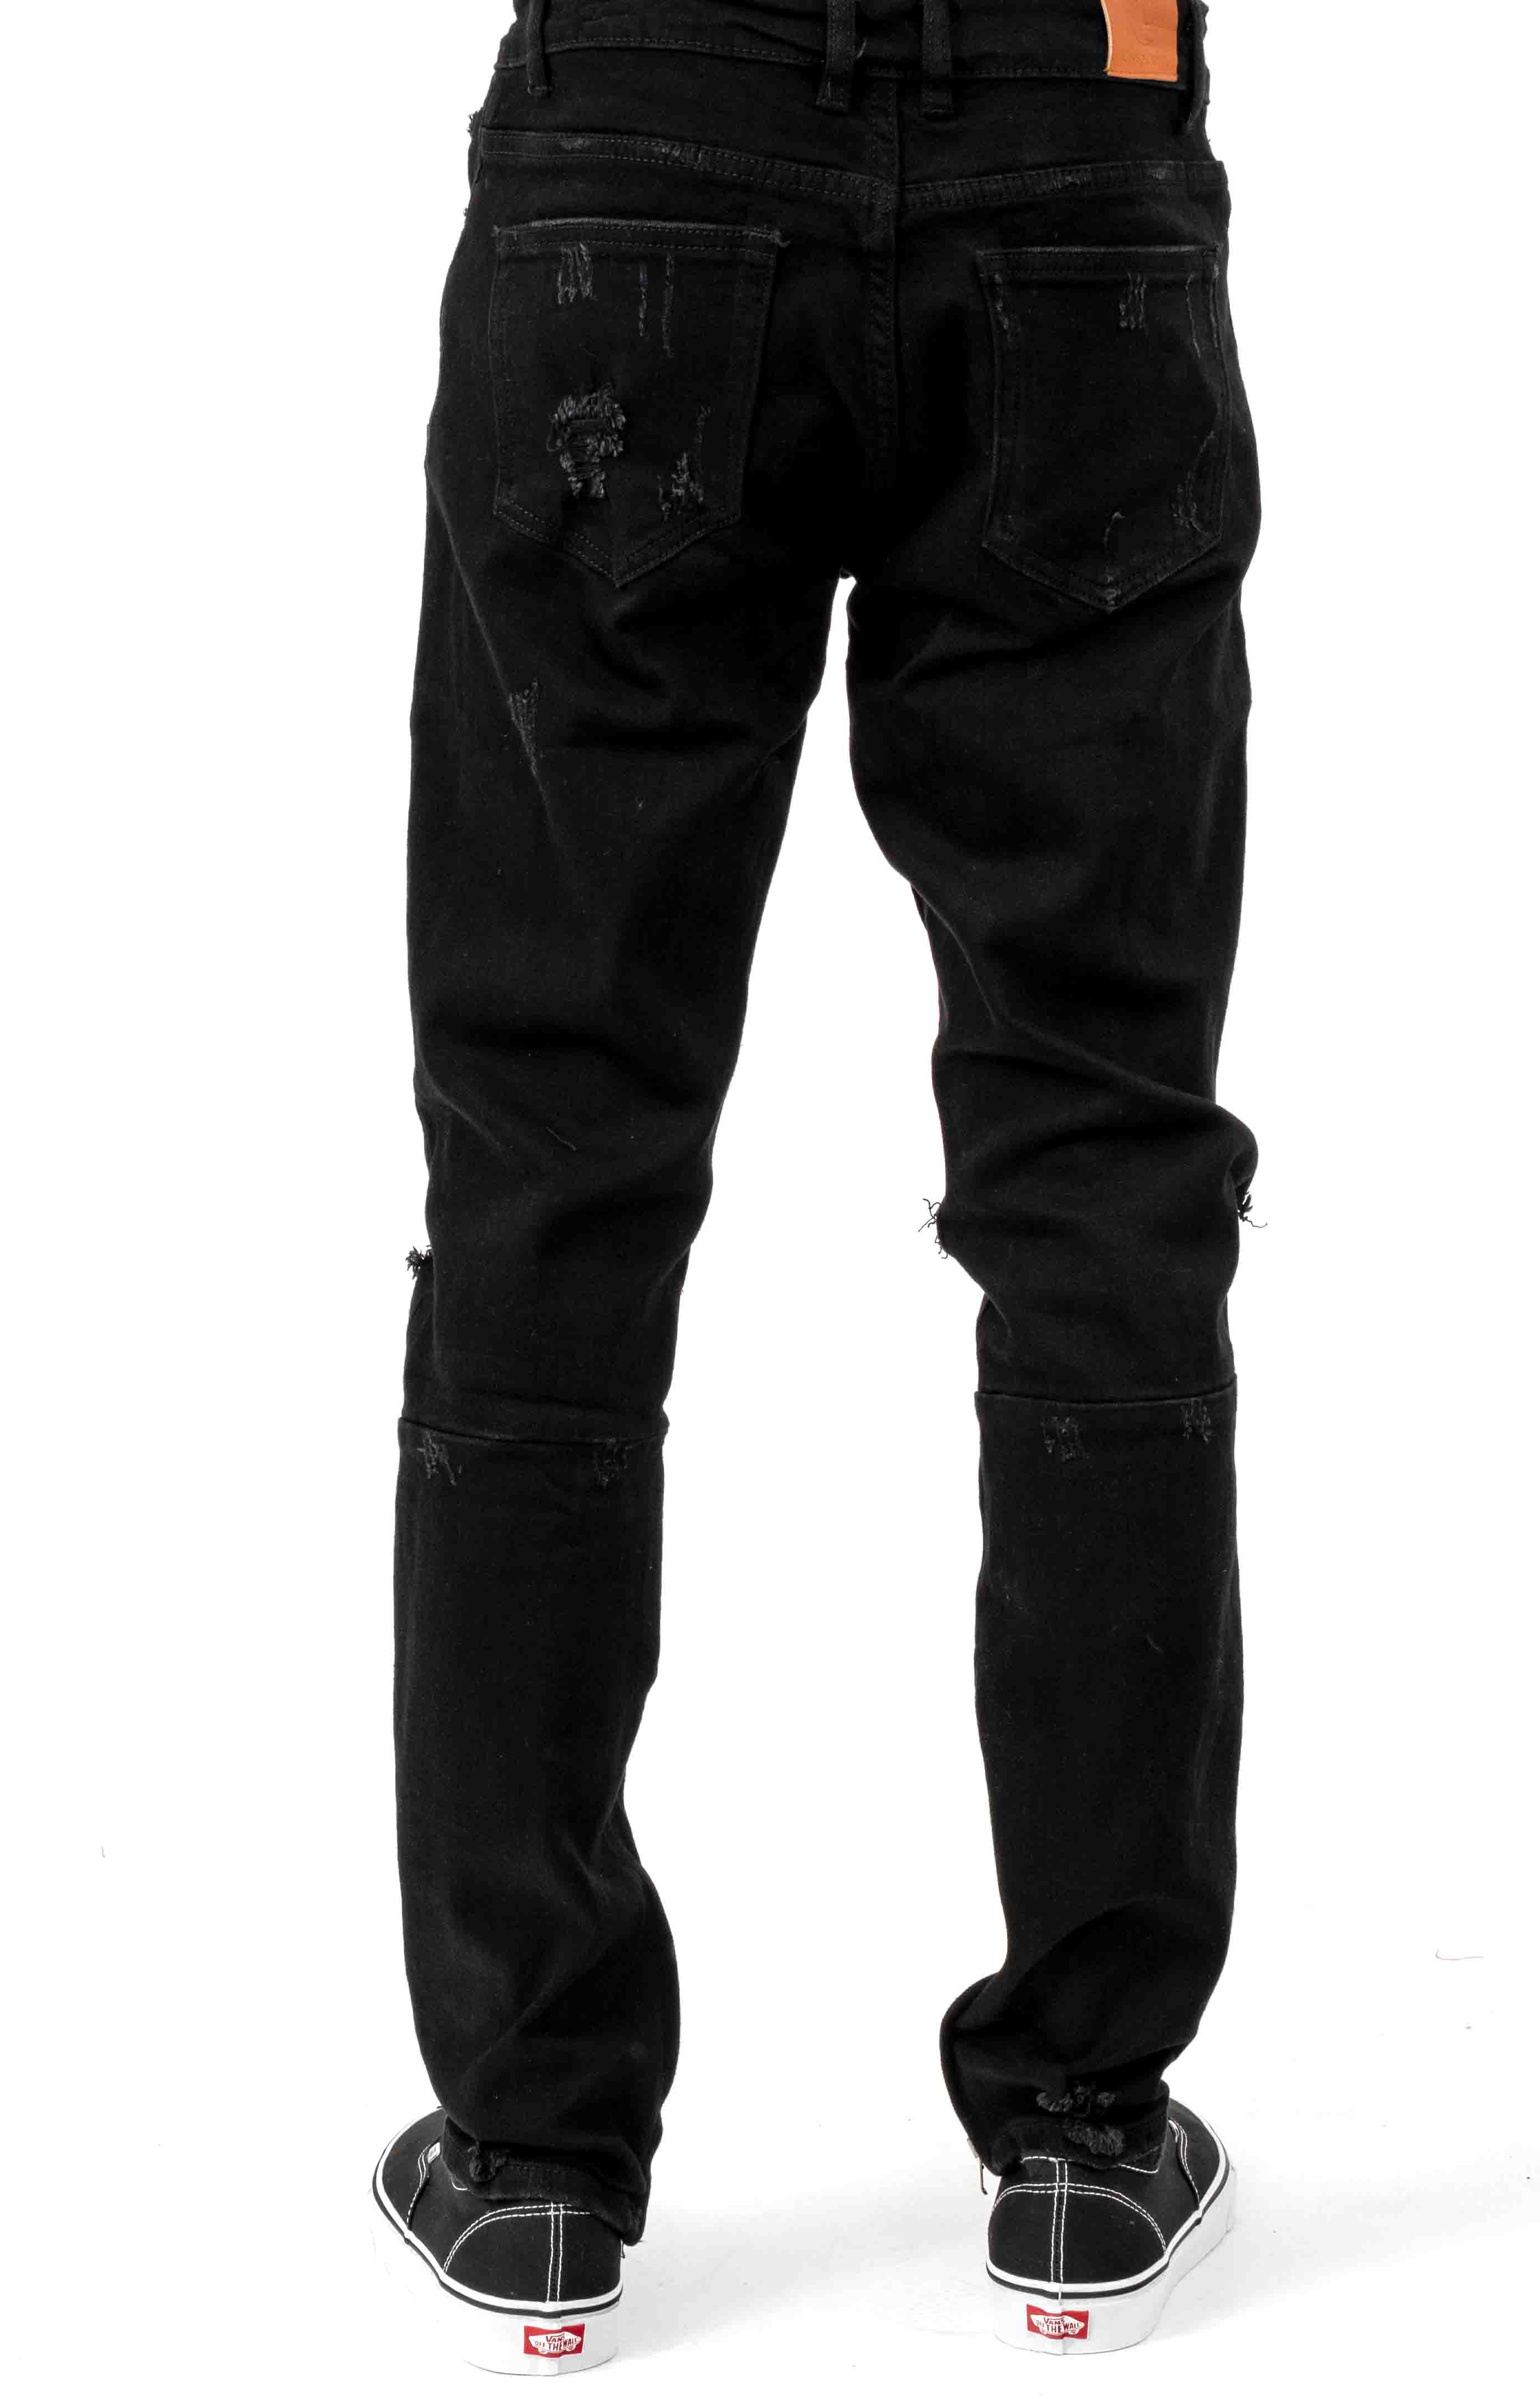 (PAC-16) Pacific Denim Jeans - Black Ripped 3